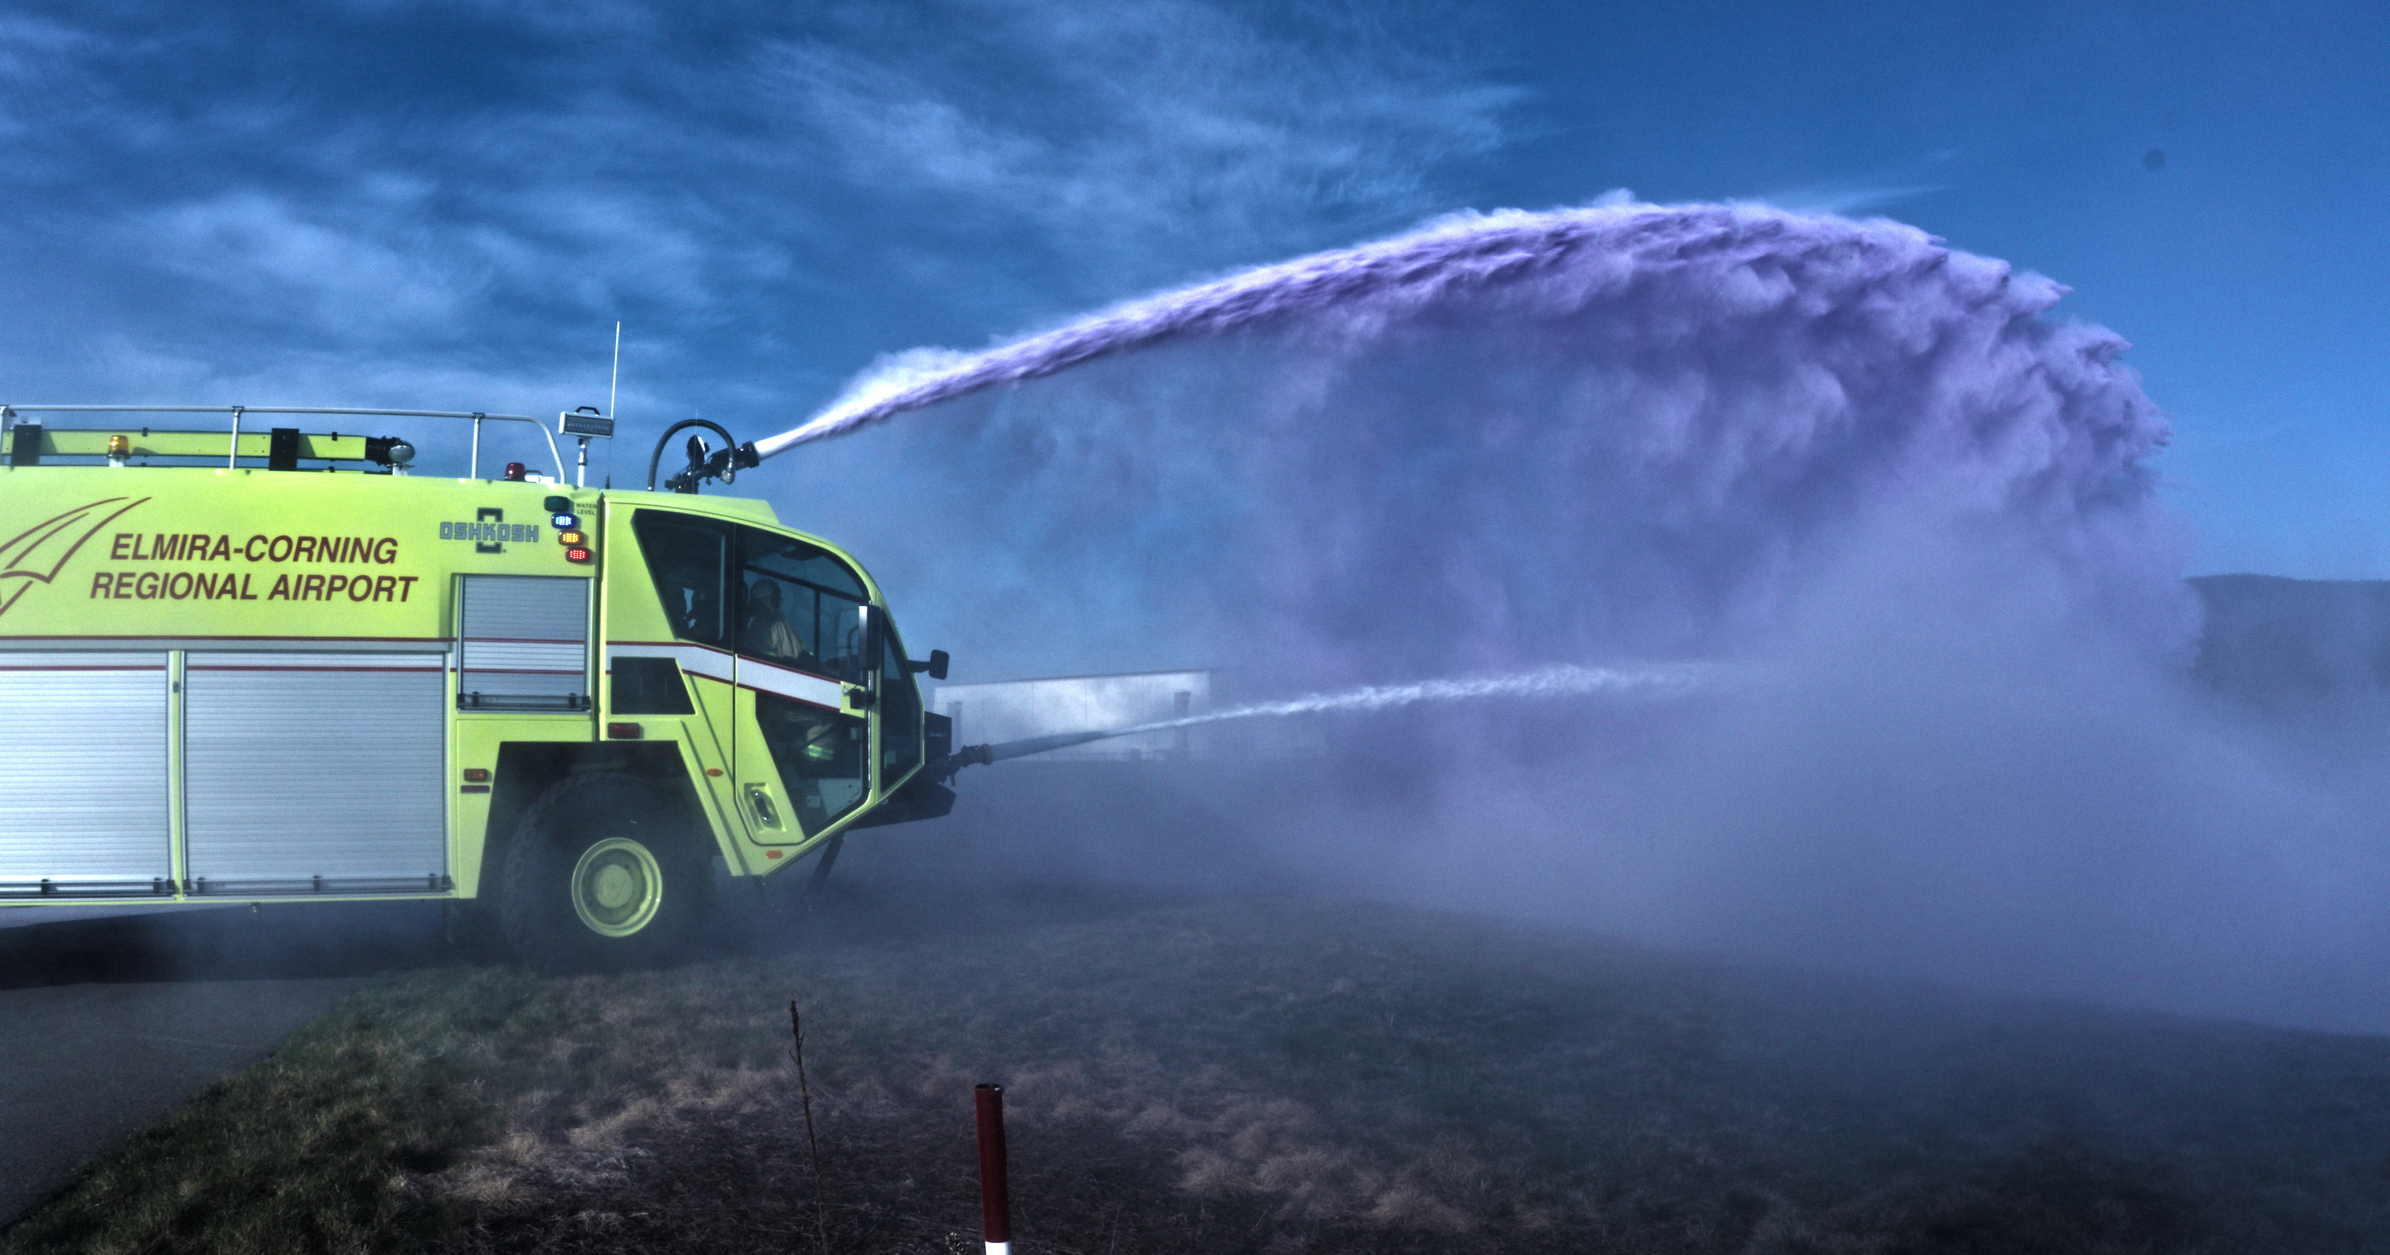 Airport fire truck spraying PFAS-containing firefighting foam on fire